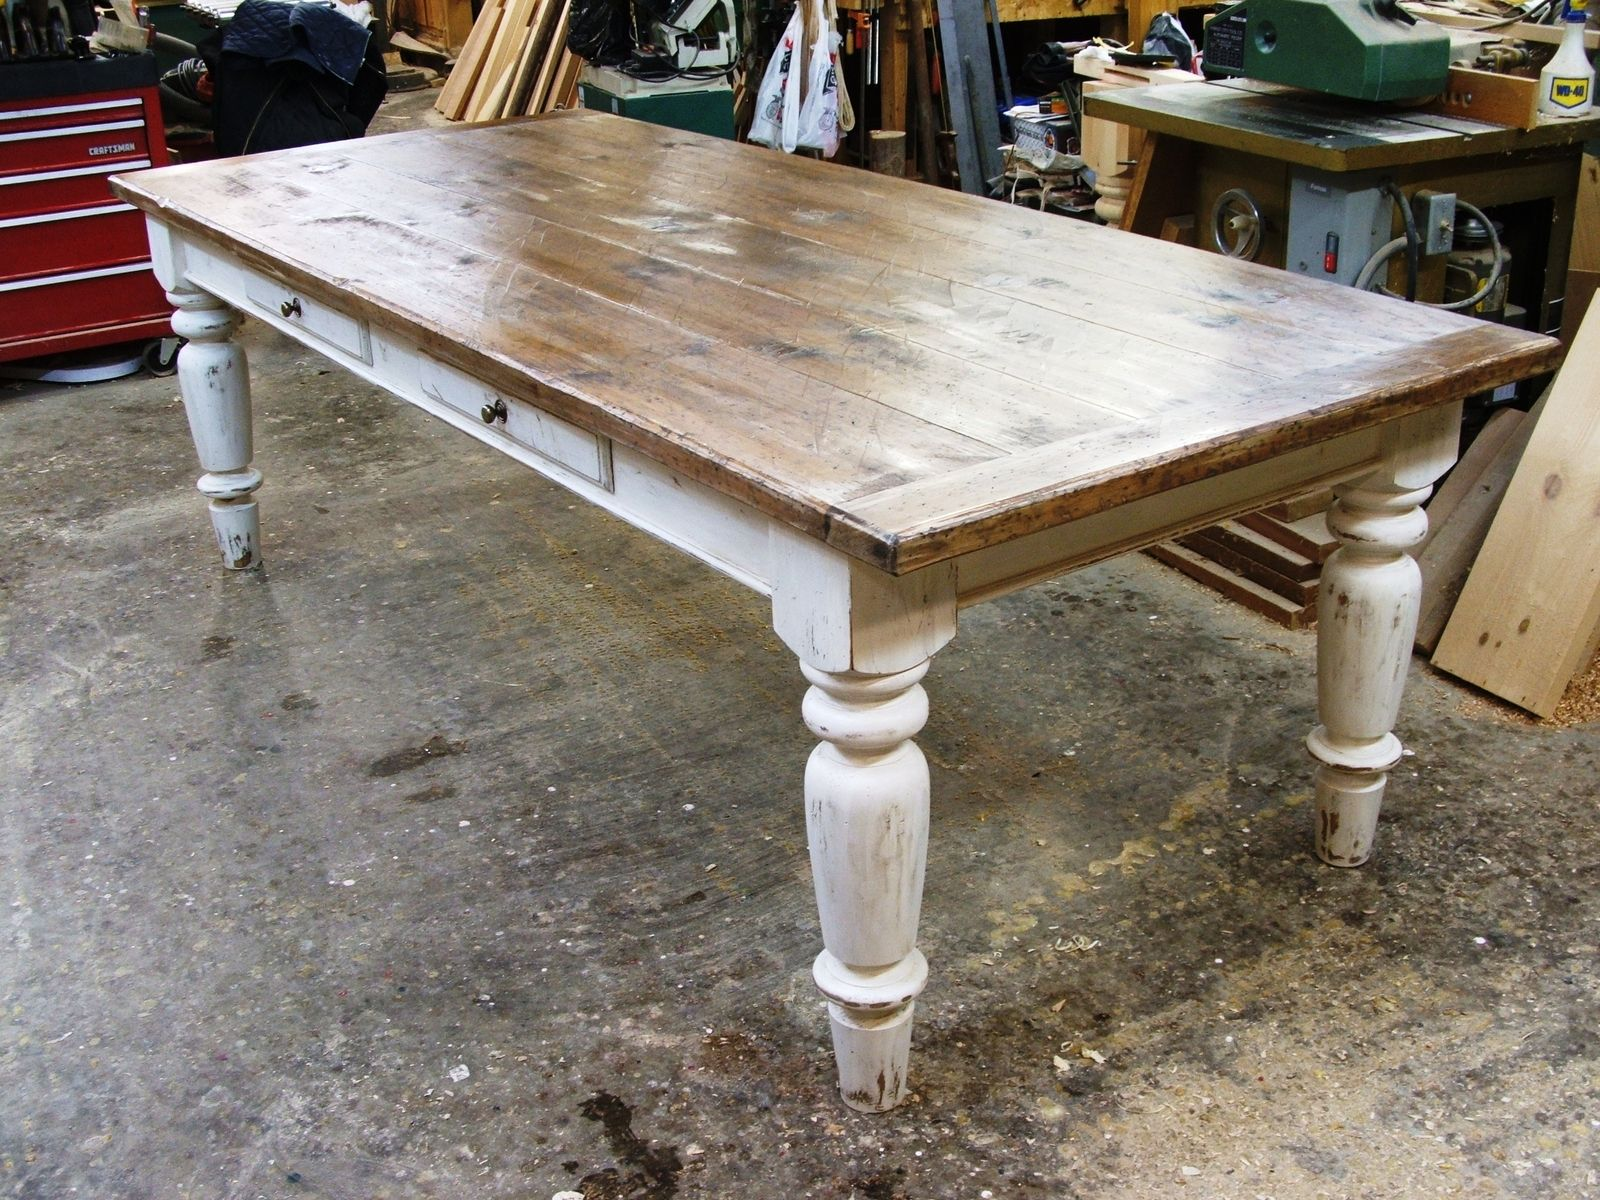 Exceptional Farm Tables For Sale Part - 5: White Scrubbed Pine Farmhouse Table, I Love The Look Of A Sturdy Farm Table  For